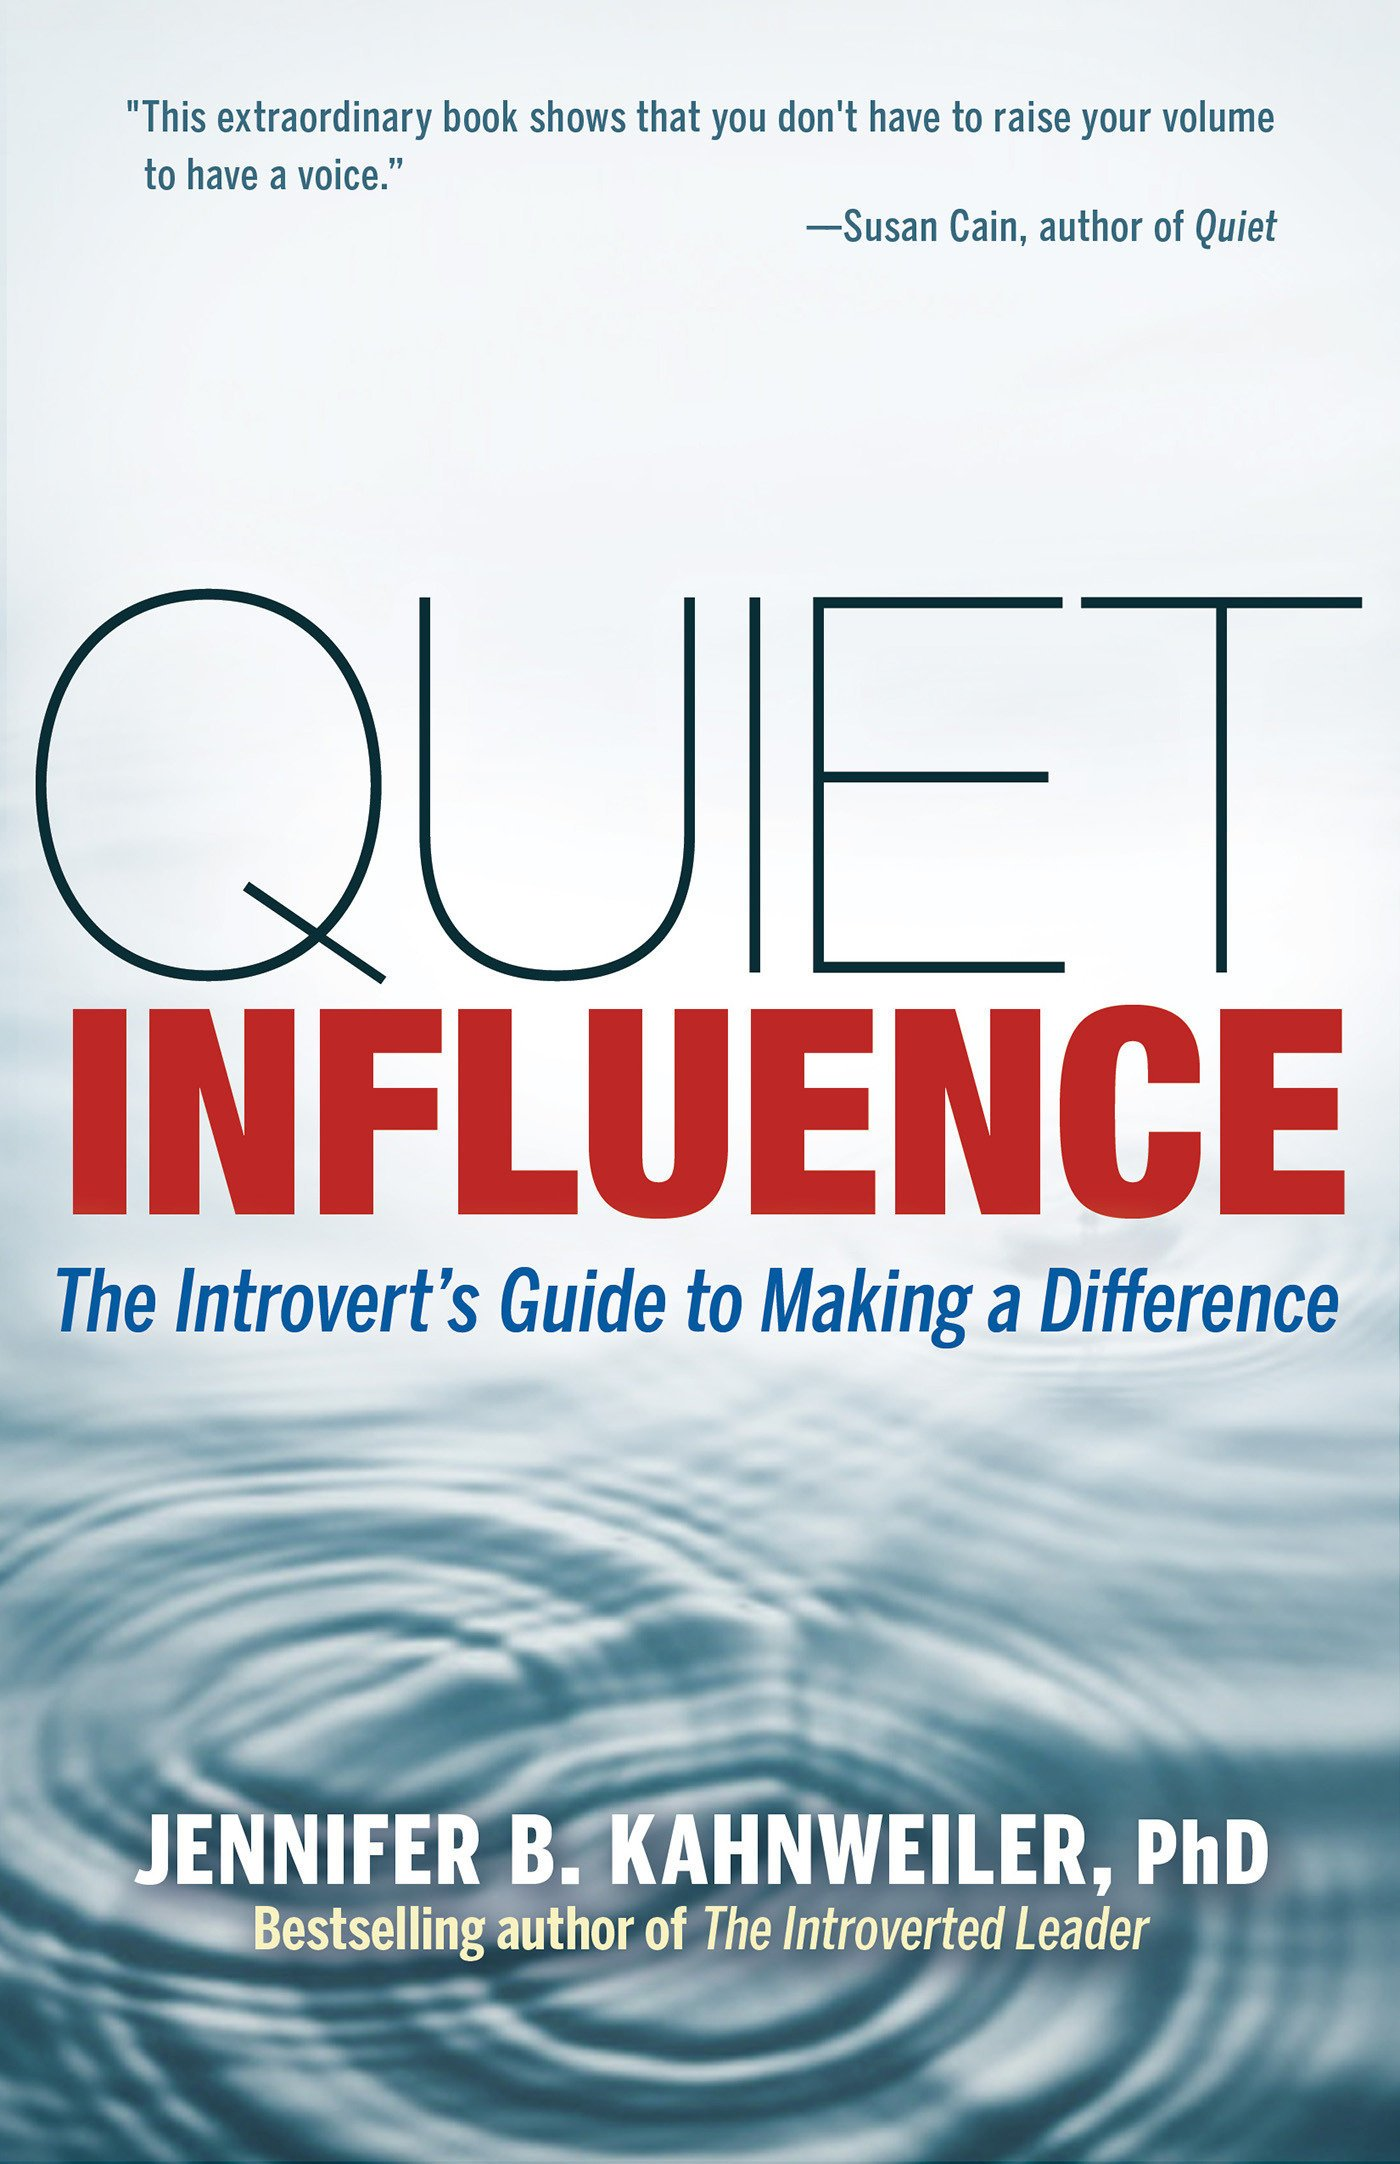 The 6 Best Books for Introverts that Inform, Entertain, and Inspire